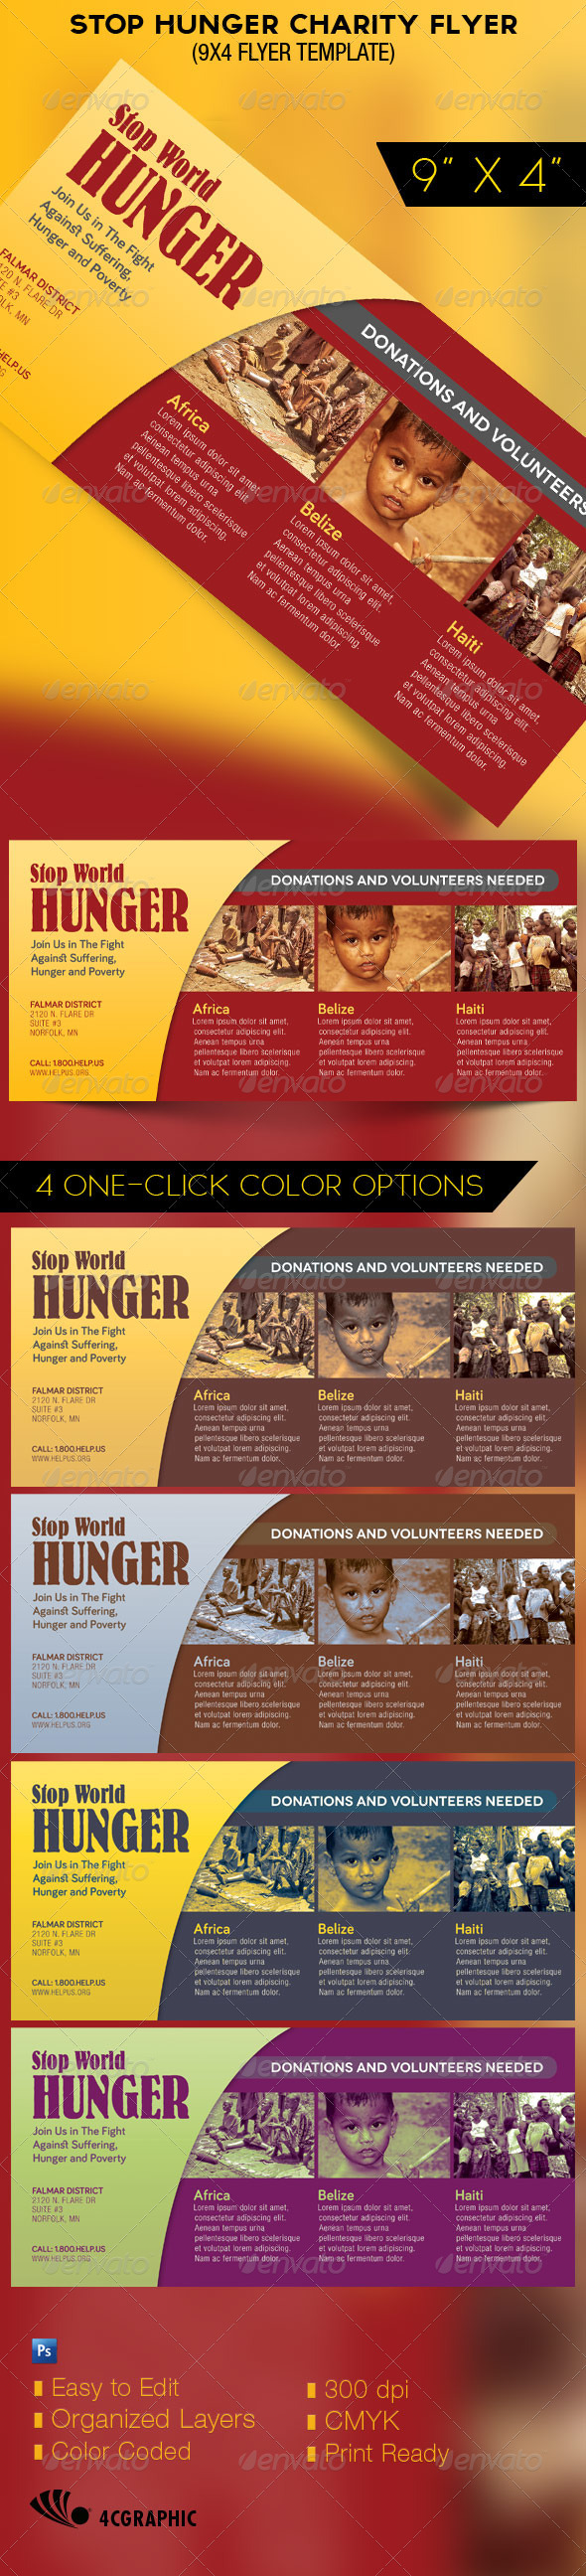 GraphicRiver Stop Hunger Charity Organization Flyer Template 3021830